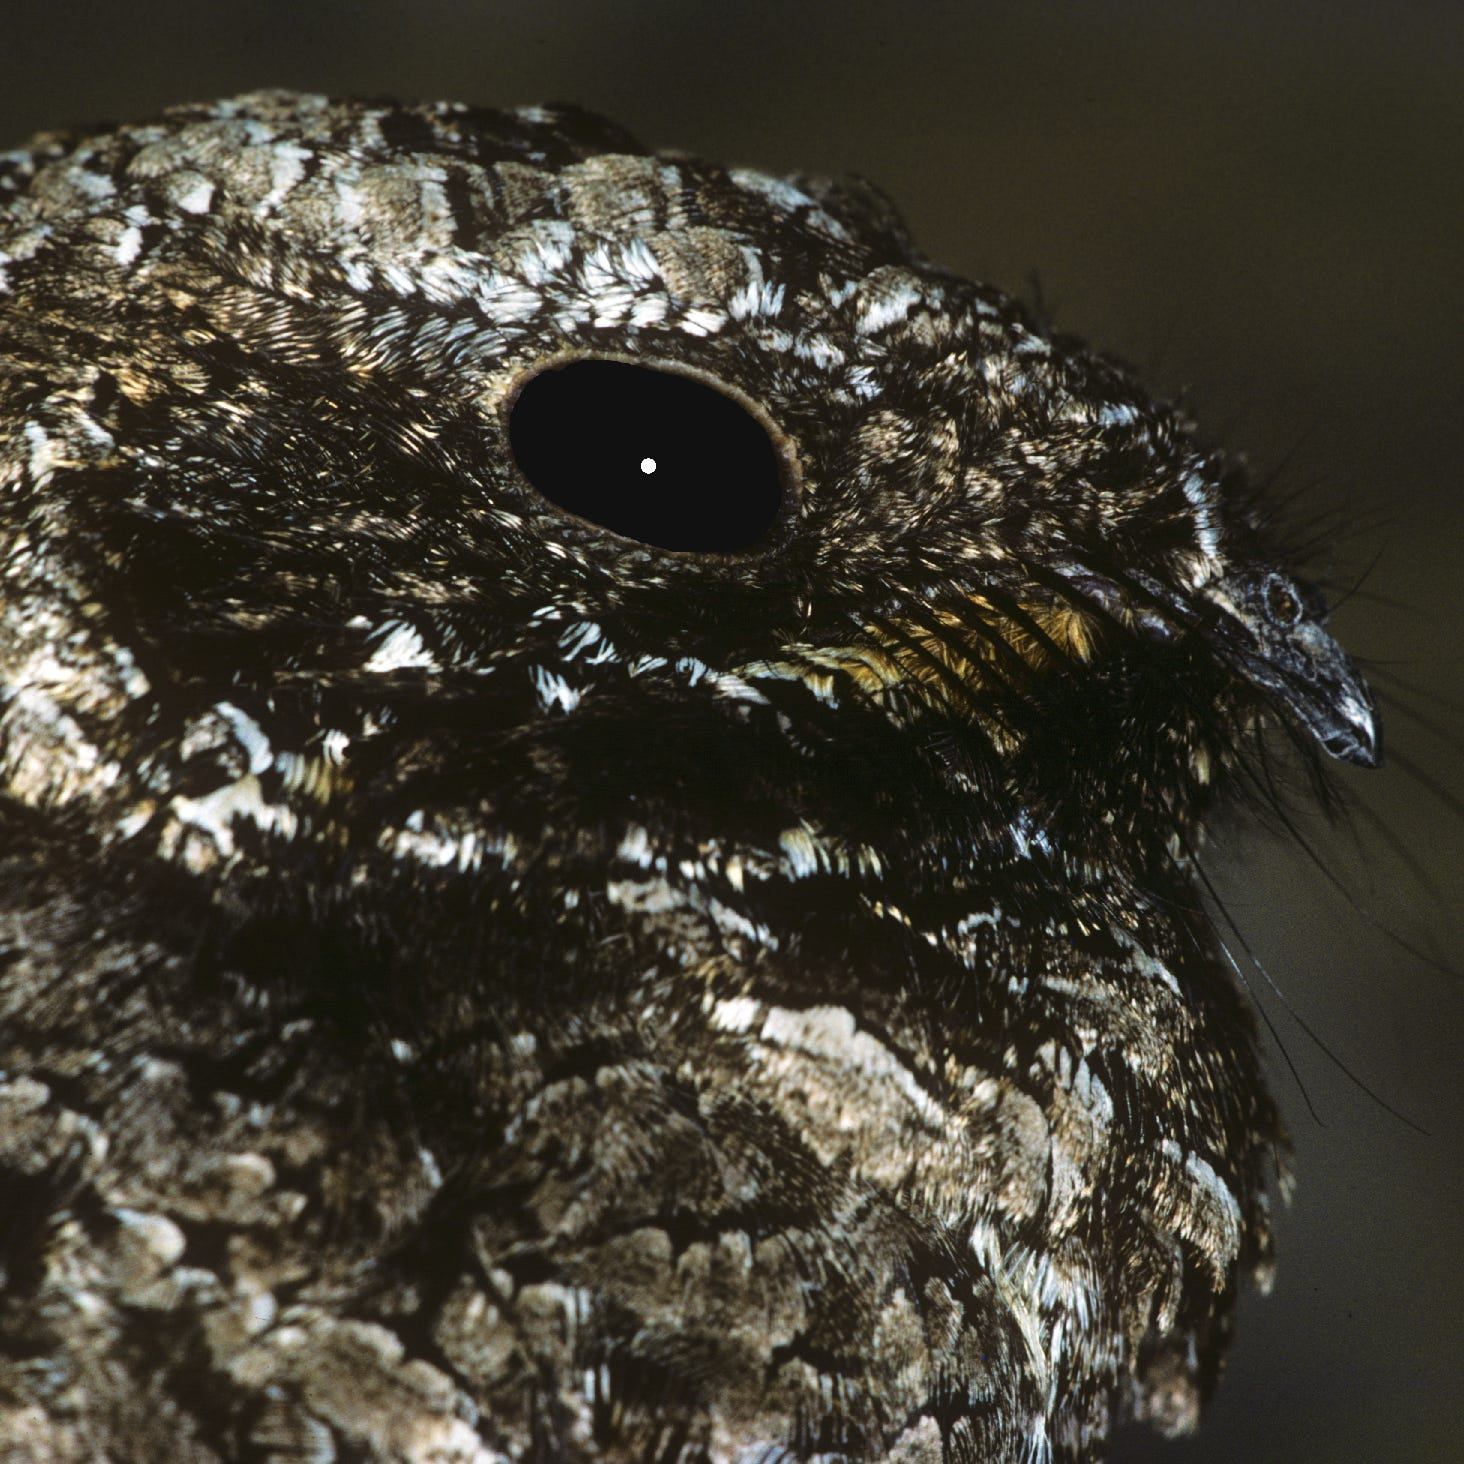 The only bird in the world known to hibernate does so right here in the Coachella Valley